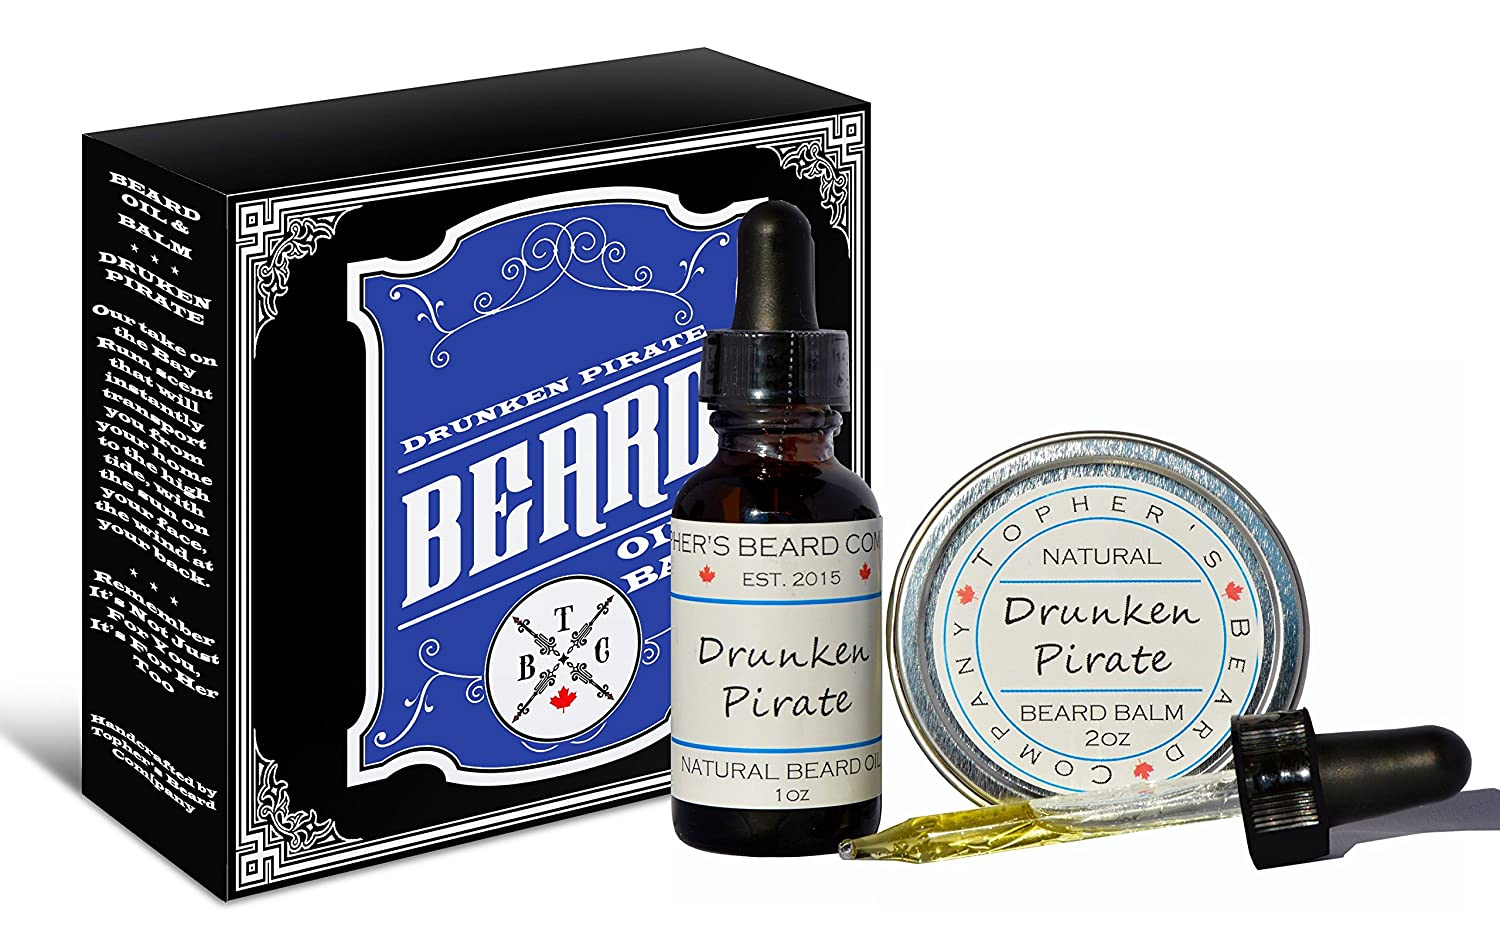 Drunken Pirate (Bay Rum) Premium Scented Beard Oil and Balm Combo (1oz & 2oz) - Topher's Beard Company for Growth, Moisturizing and Conditioning Topher's Beard Company